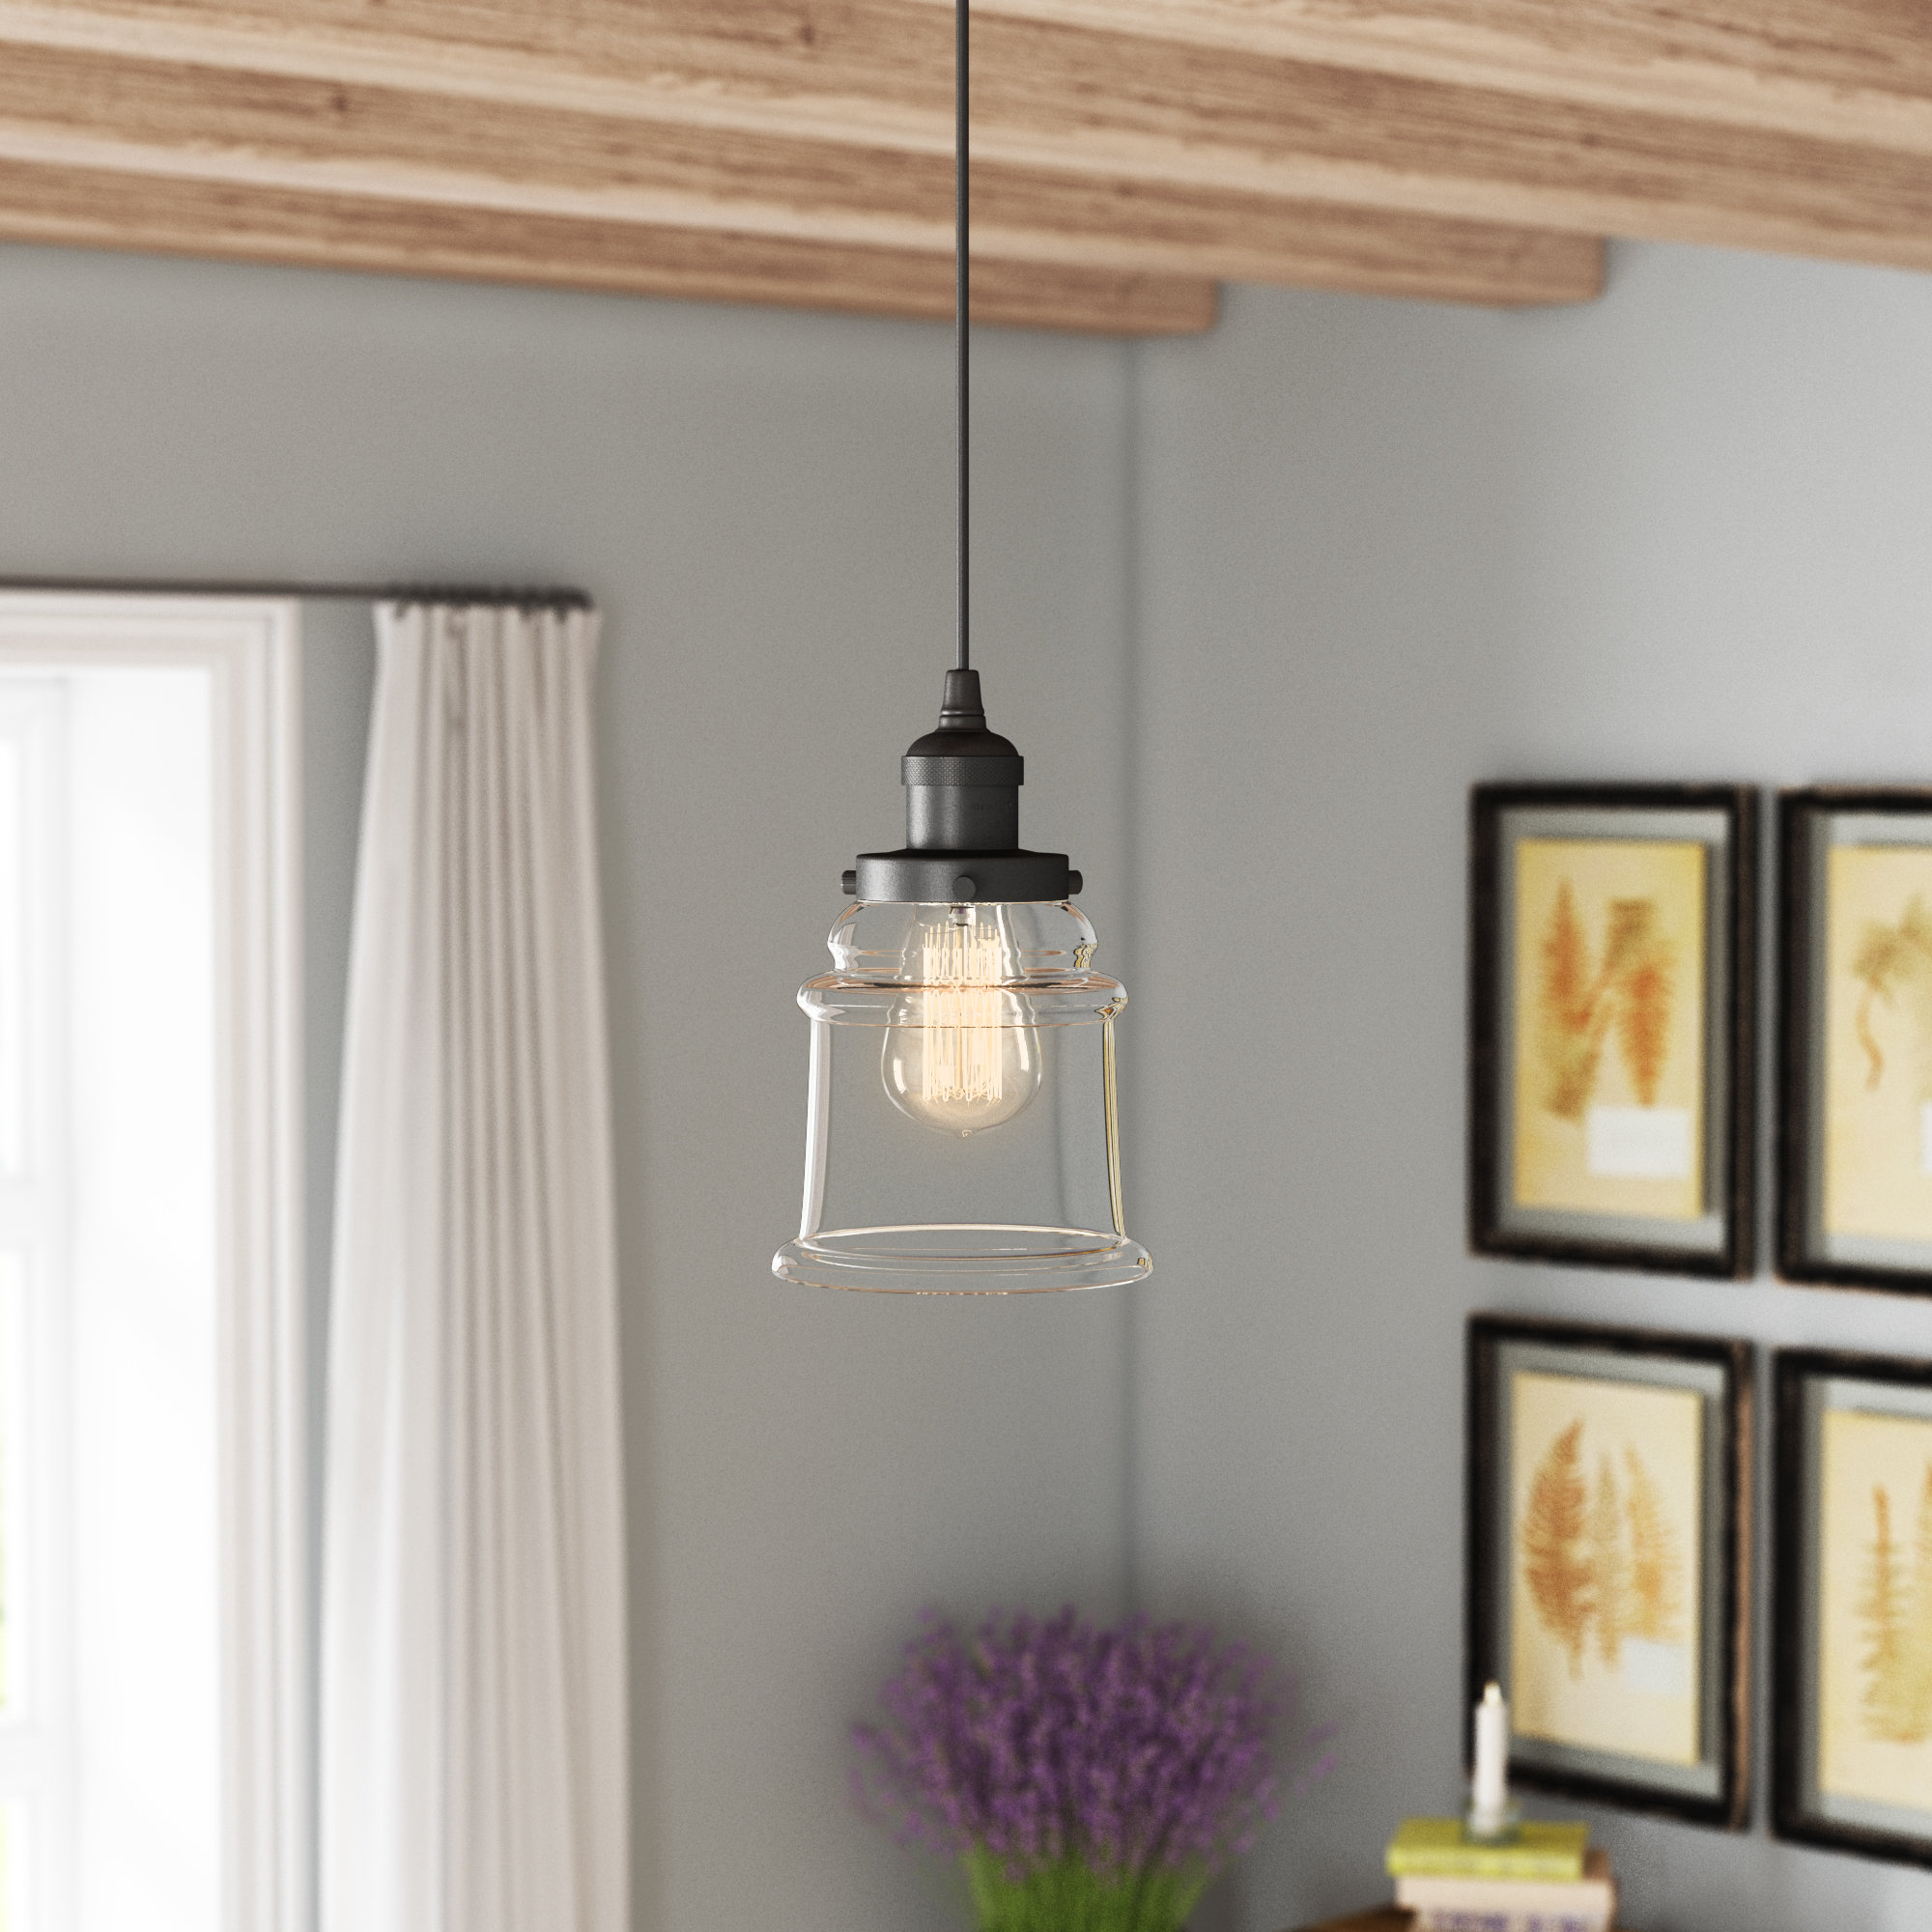 Popular Sargent 1 Light Single Bell Pendants With Regard To Greeley 1 Light Single Bell Pendant (View 14 of 25)